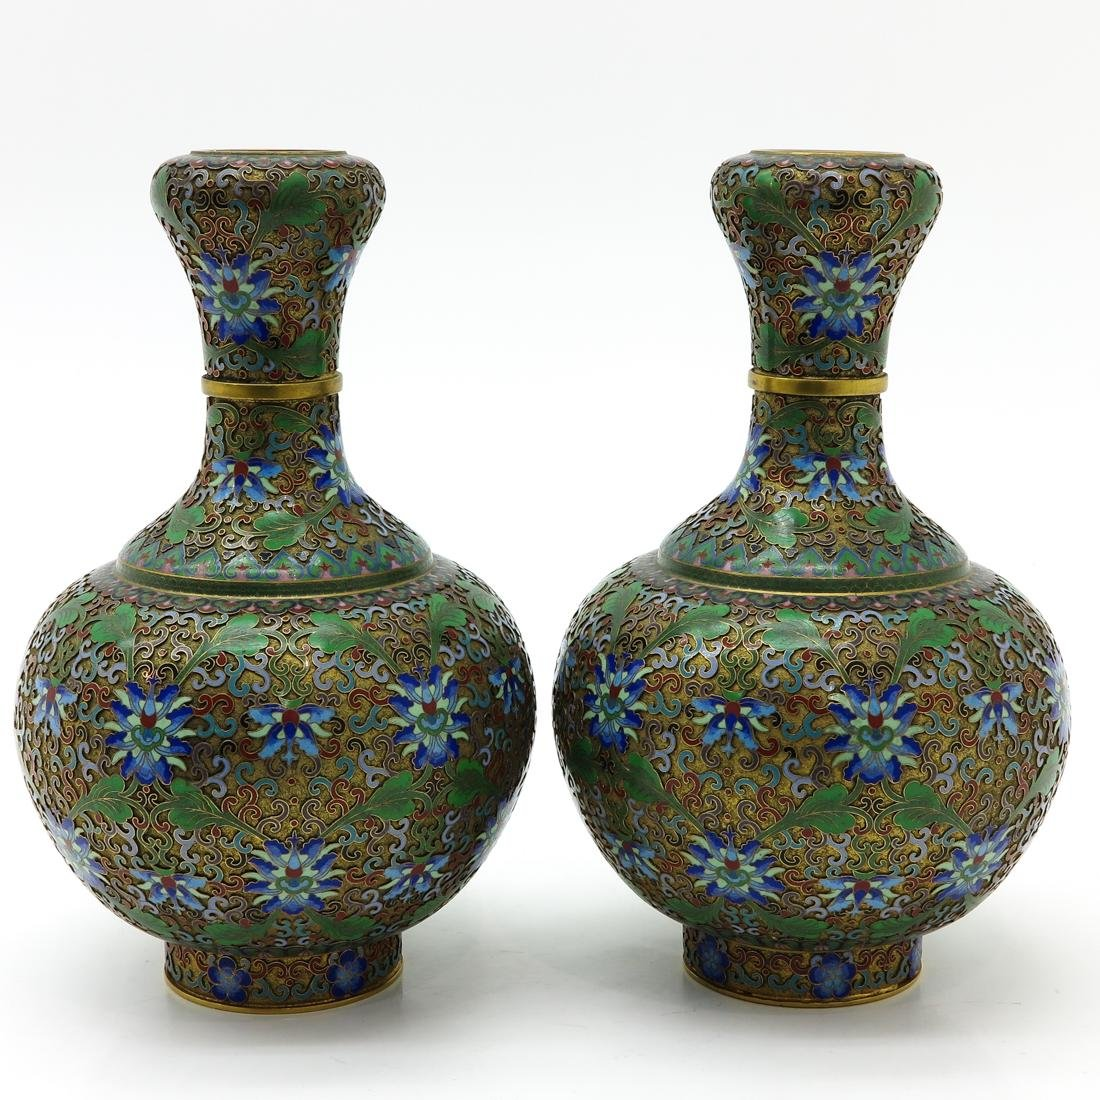 Pair of Cloisonne Vases - 2